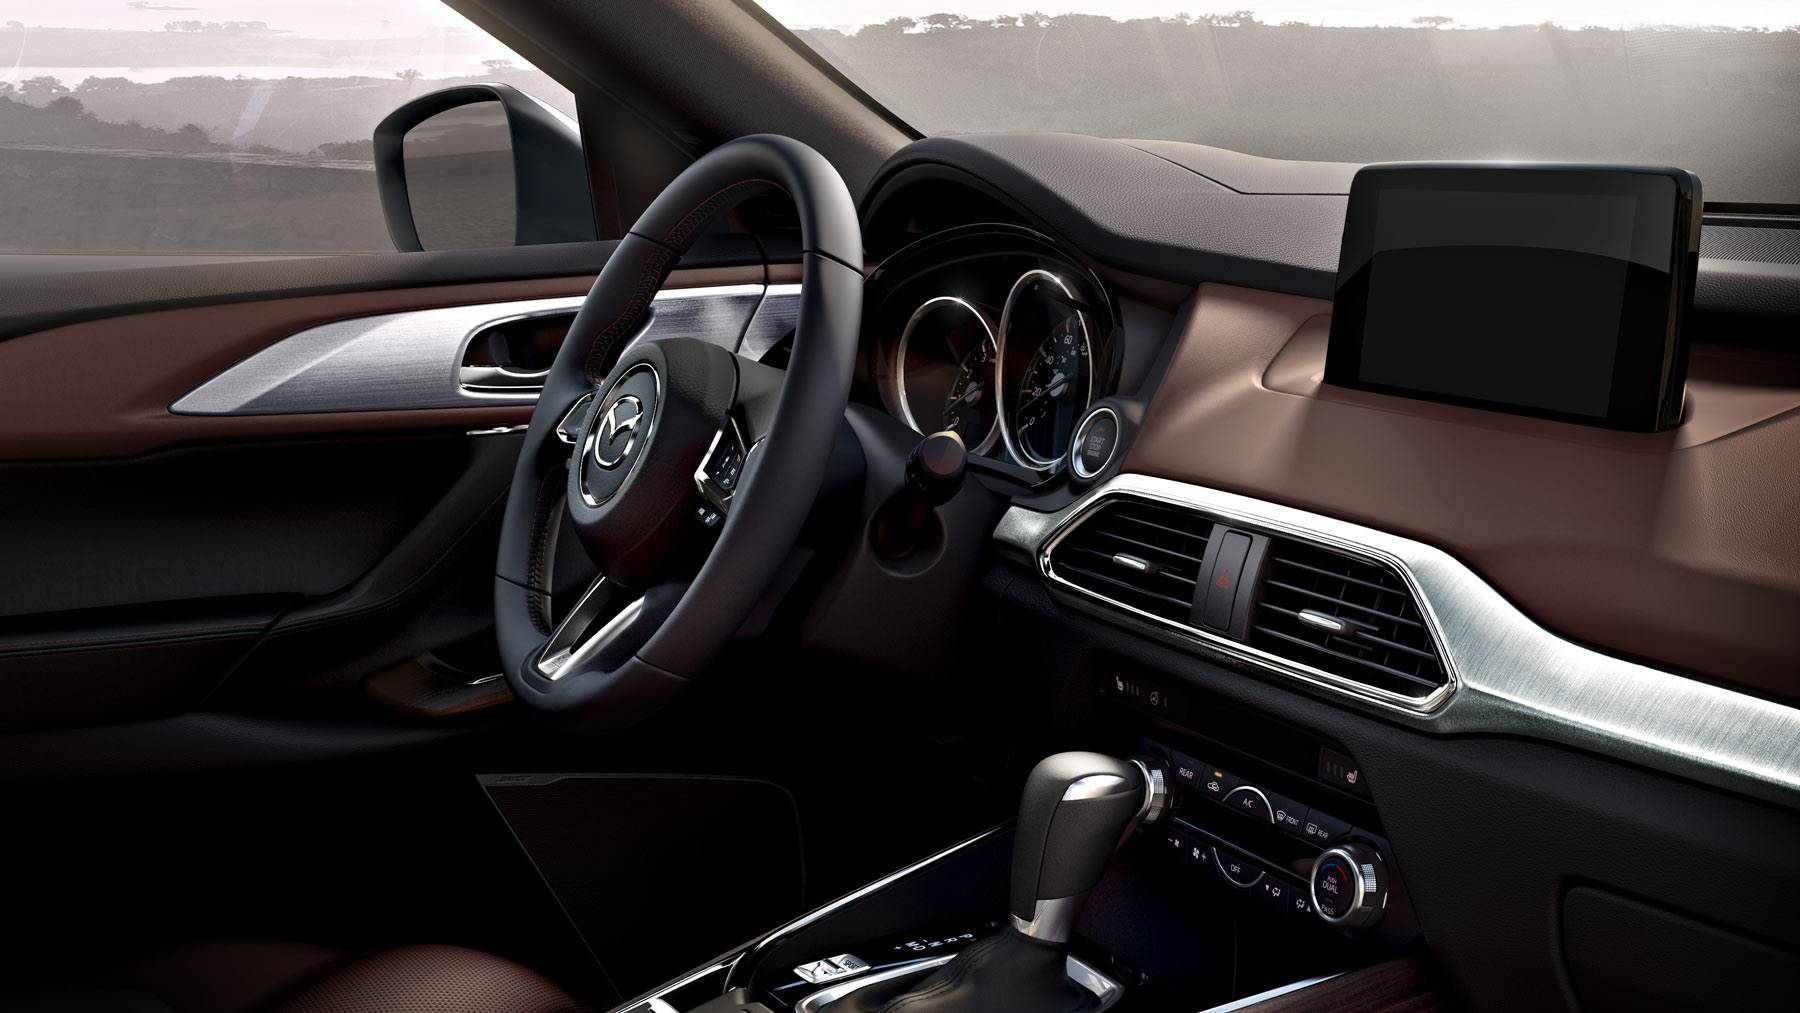 The Mazda CX-9 is Packed With Plenty of Technology!